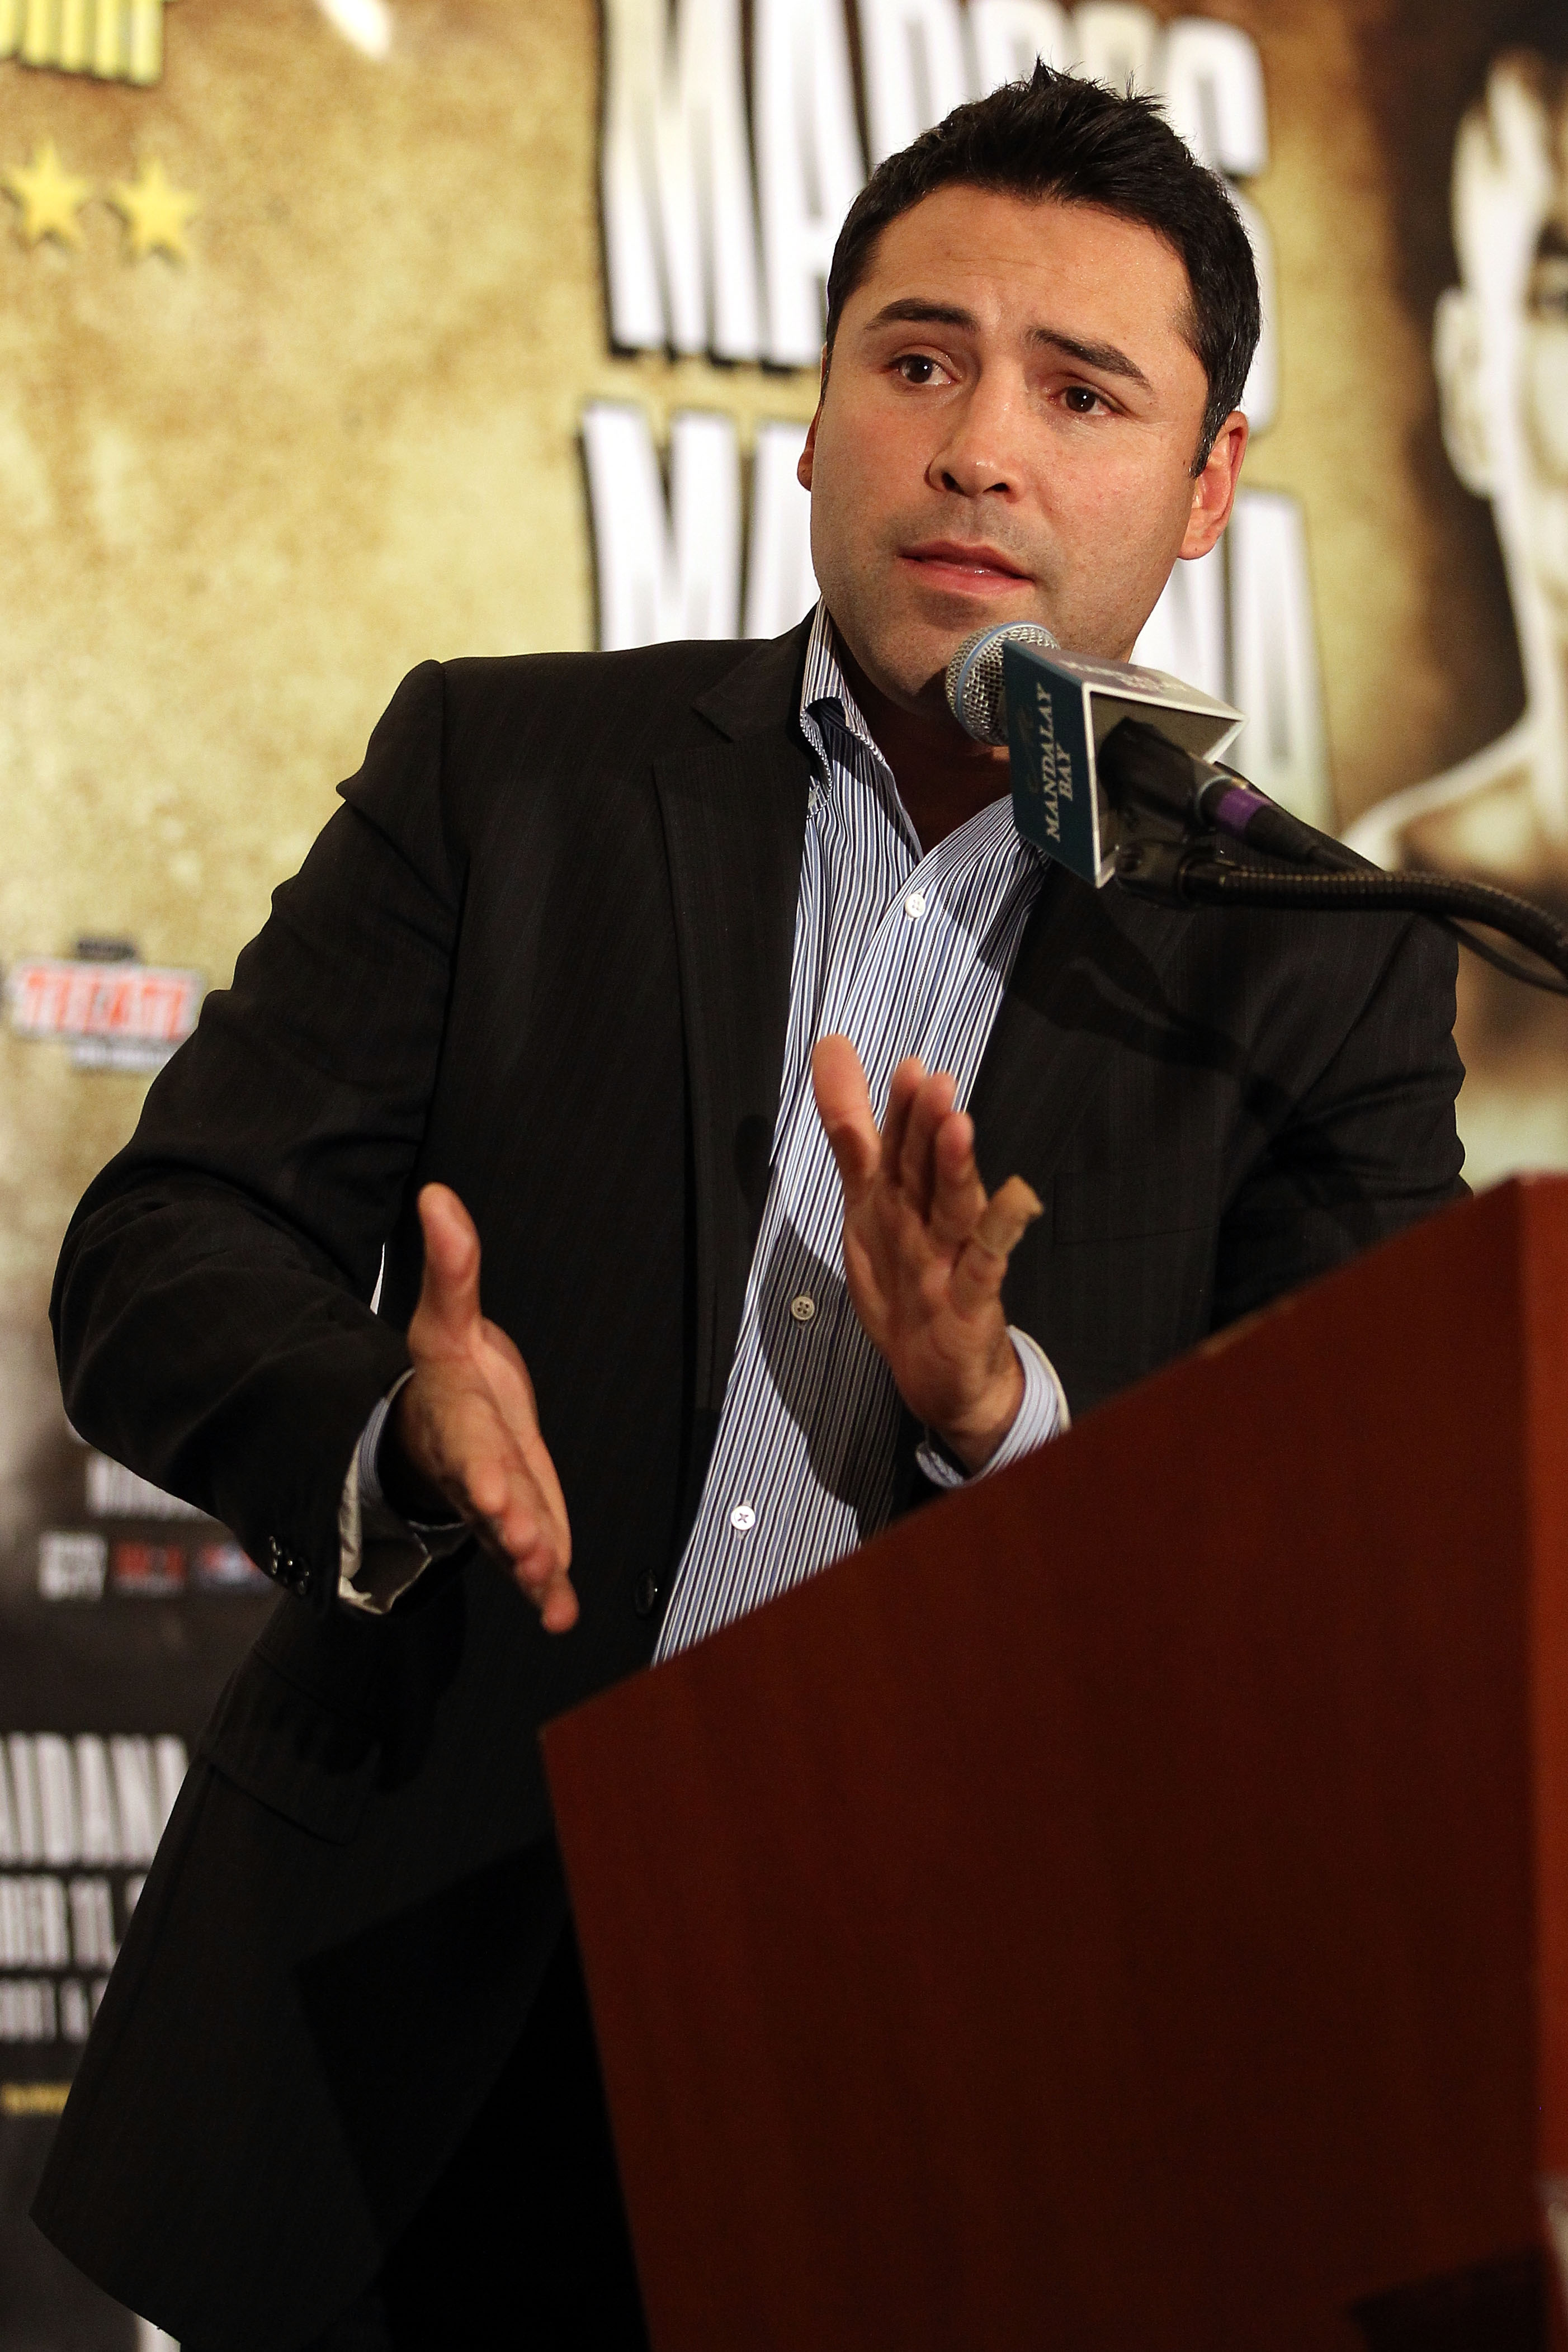 LAS VEGAS - DECEMBER 11:  Golden Boy Promotions President Oscar De La Hoya answers questions during the post-fight news conference after Amir Khan's unanimous decision victory against Marcos Maidana of Argentina after their WBA super lightweight title fig